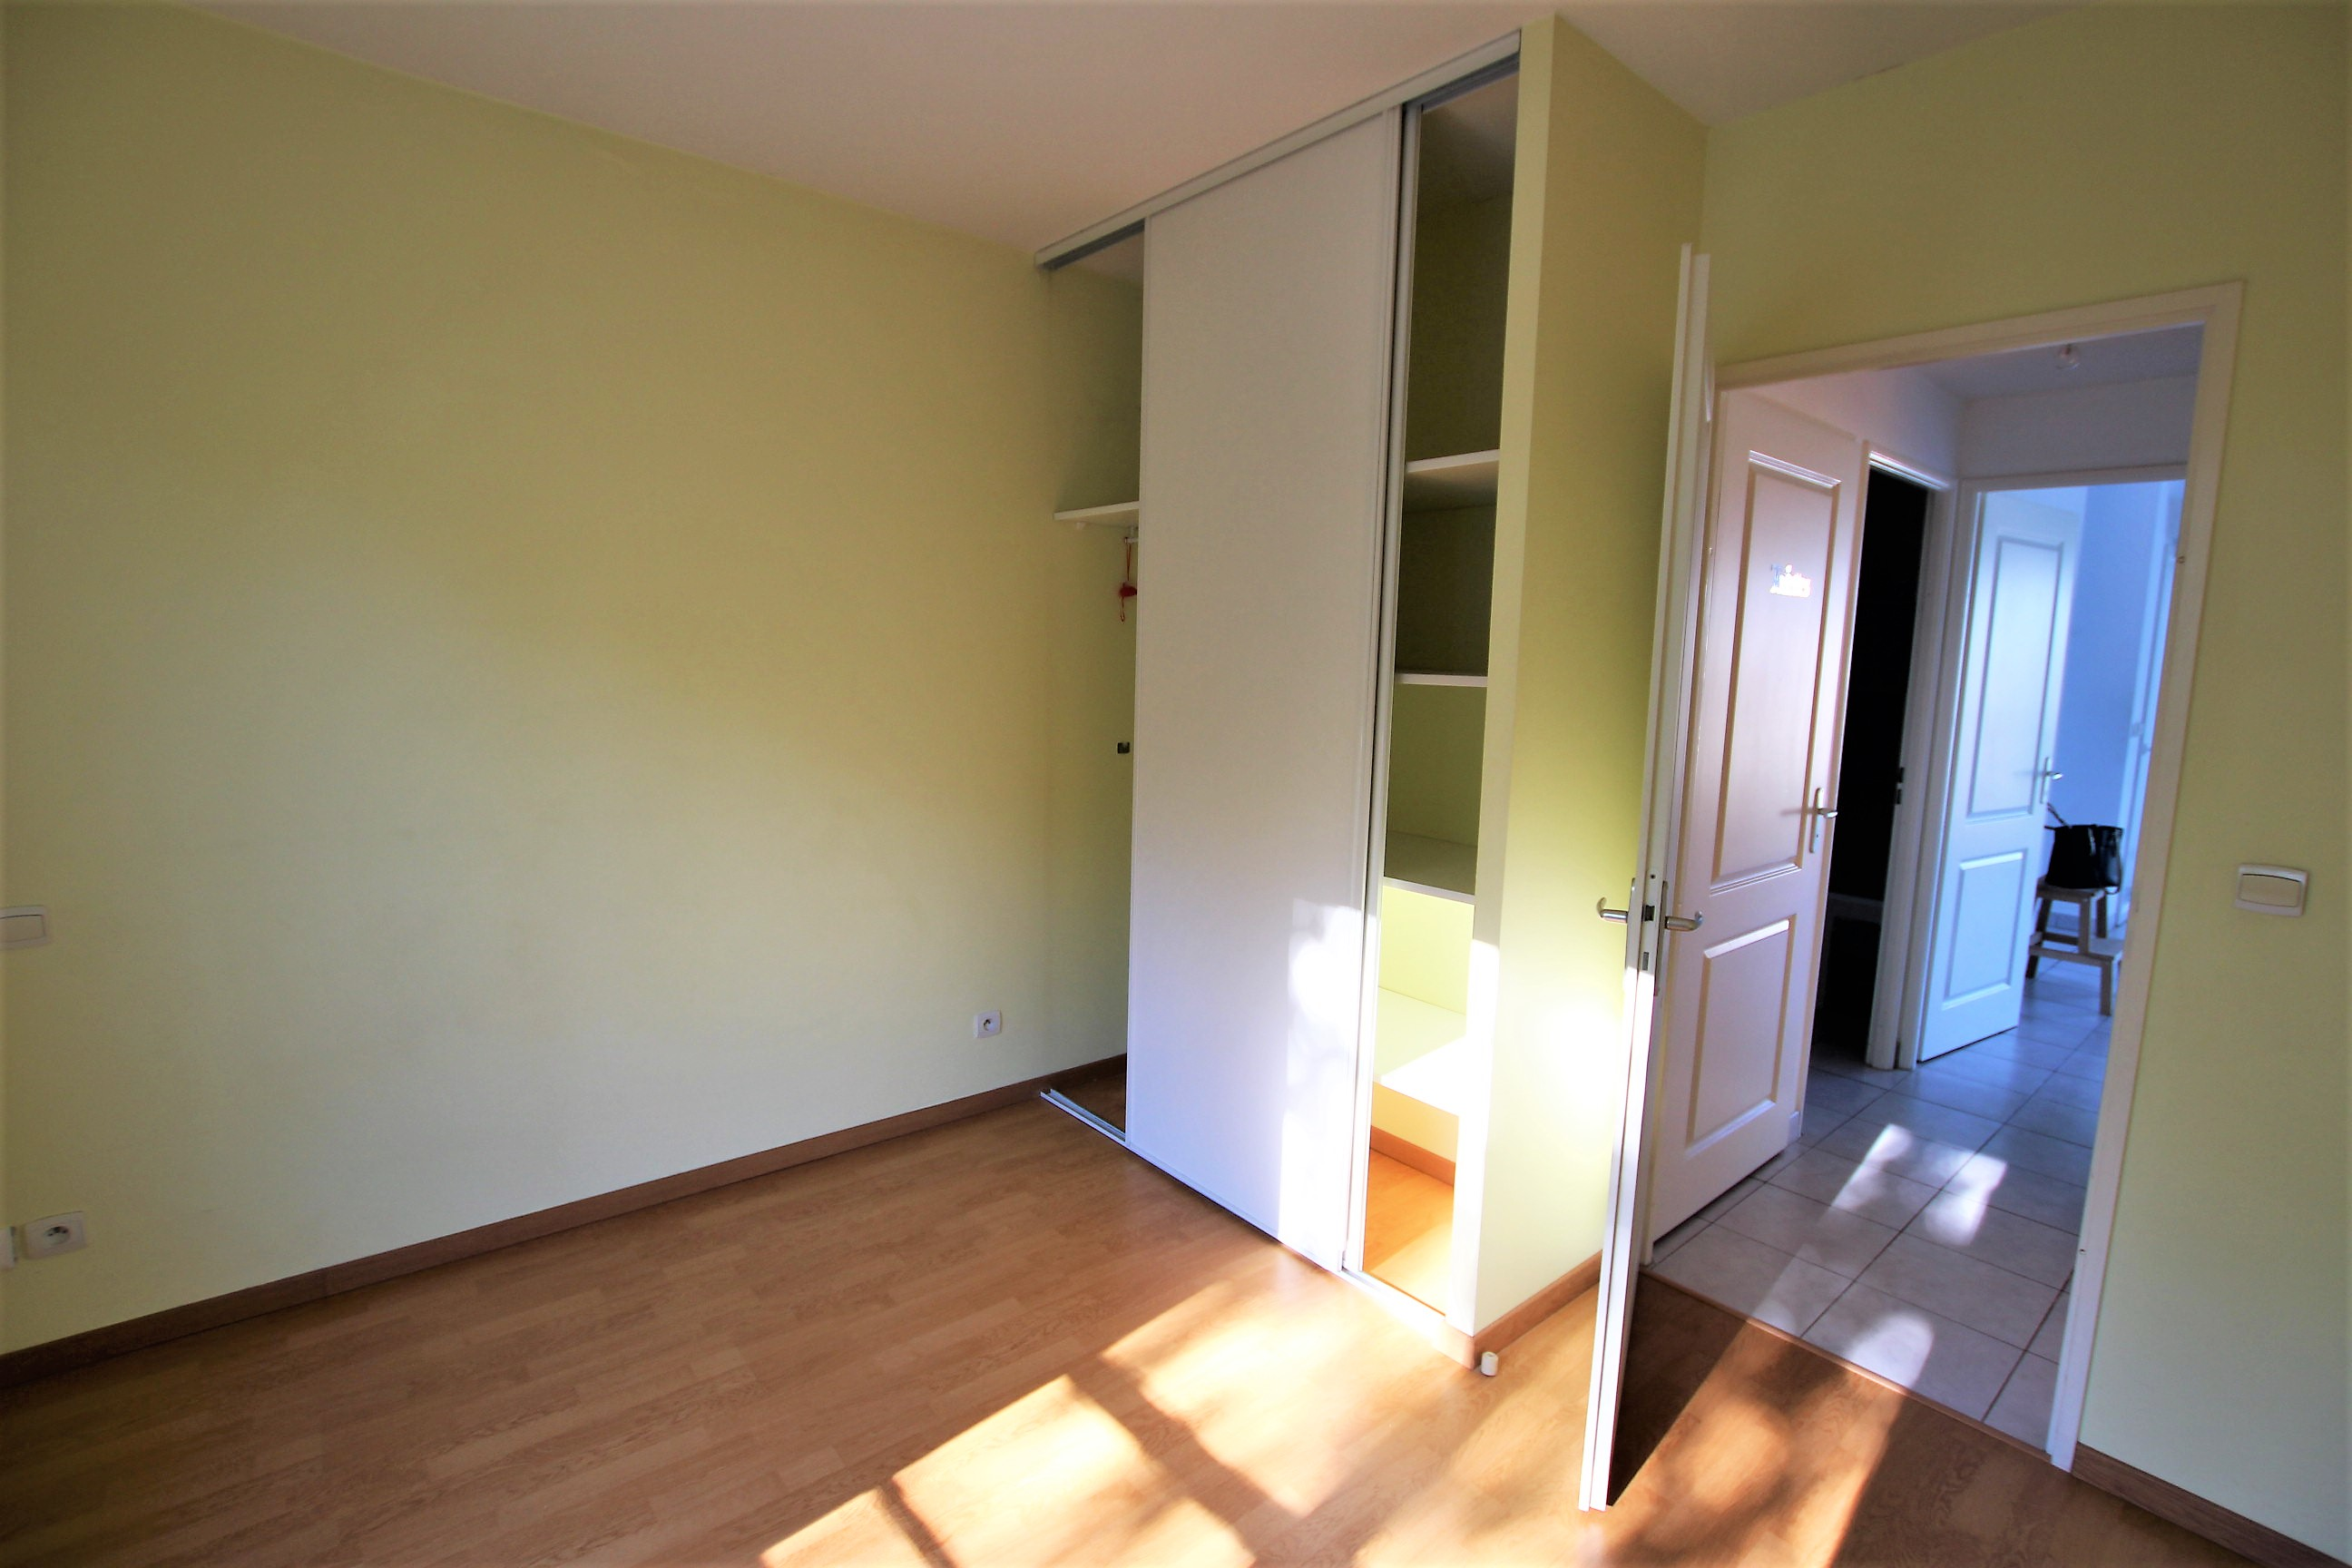 Qovop Immobilier | Achat Appartement 55 m² - 17180 PERIGNY